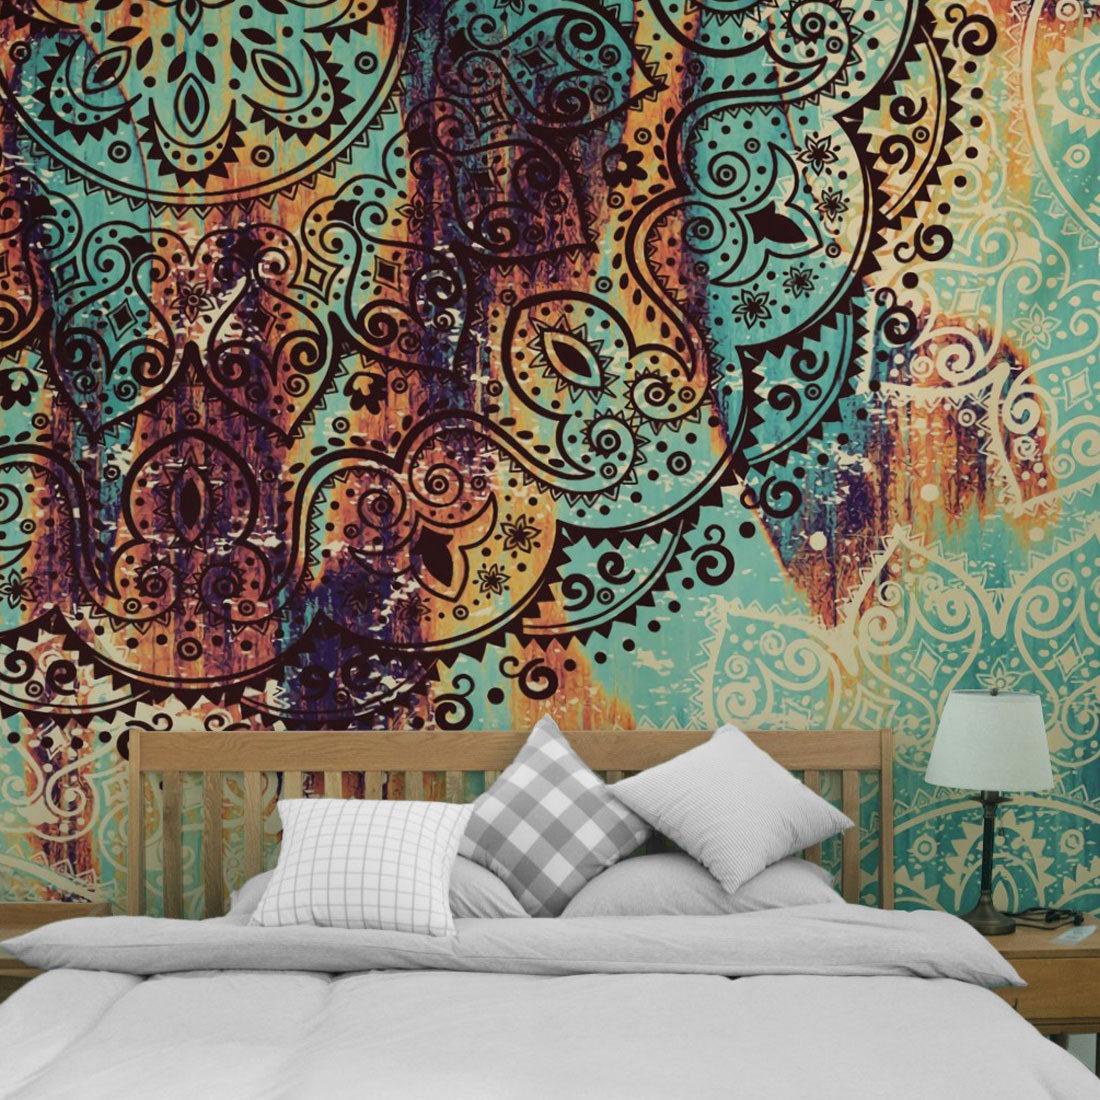 Bohemia Beach Blanket Bed Sheets Indian Tapestry Colored Printed Decor Religious Boho Wall Carpet in Tapestry from Home Garden